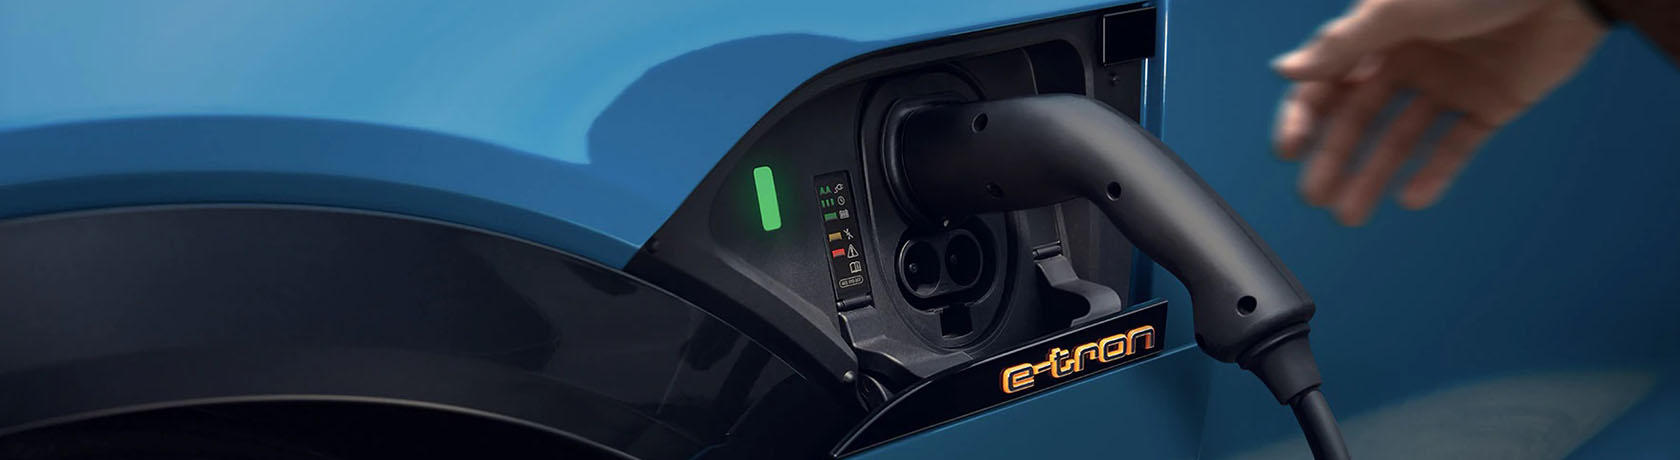 Short practical guide to charging an electric car